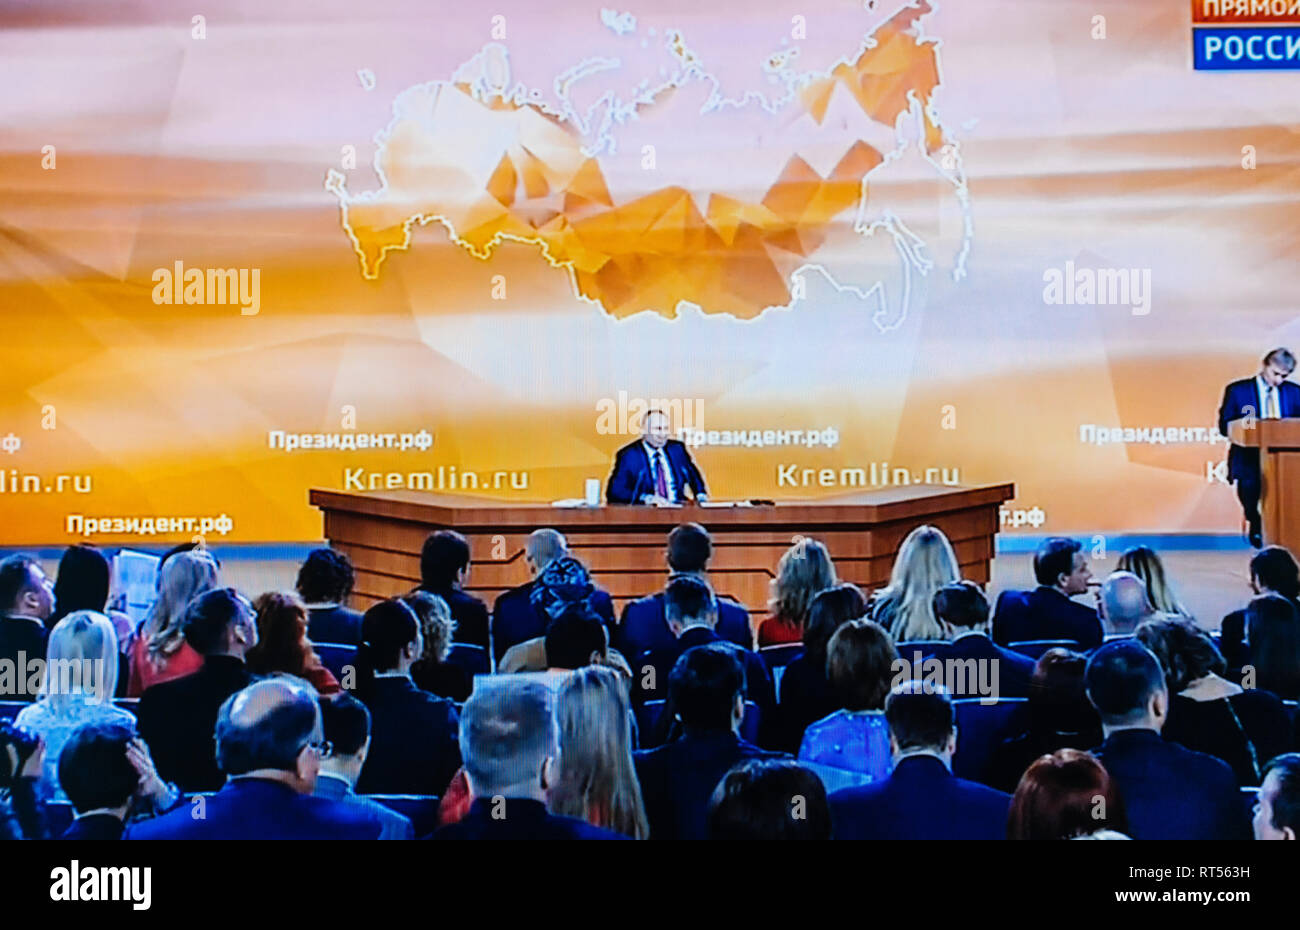 PARIS, FRANCE - DEC 14, 2017: POV watching on Youtube live channel of Rossiya RTR the Russian President Vladimir Putin give final media Q&A before March election large hall with journalists - Stock Image